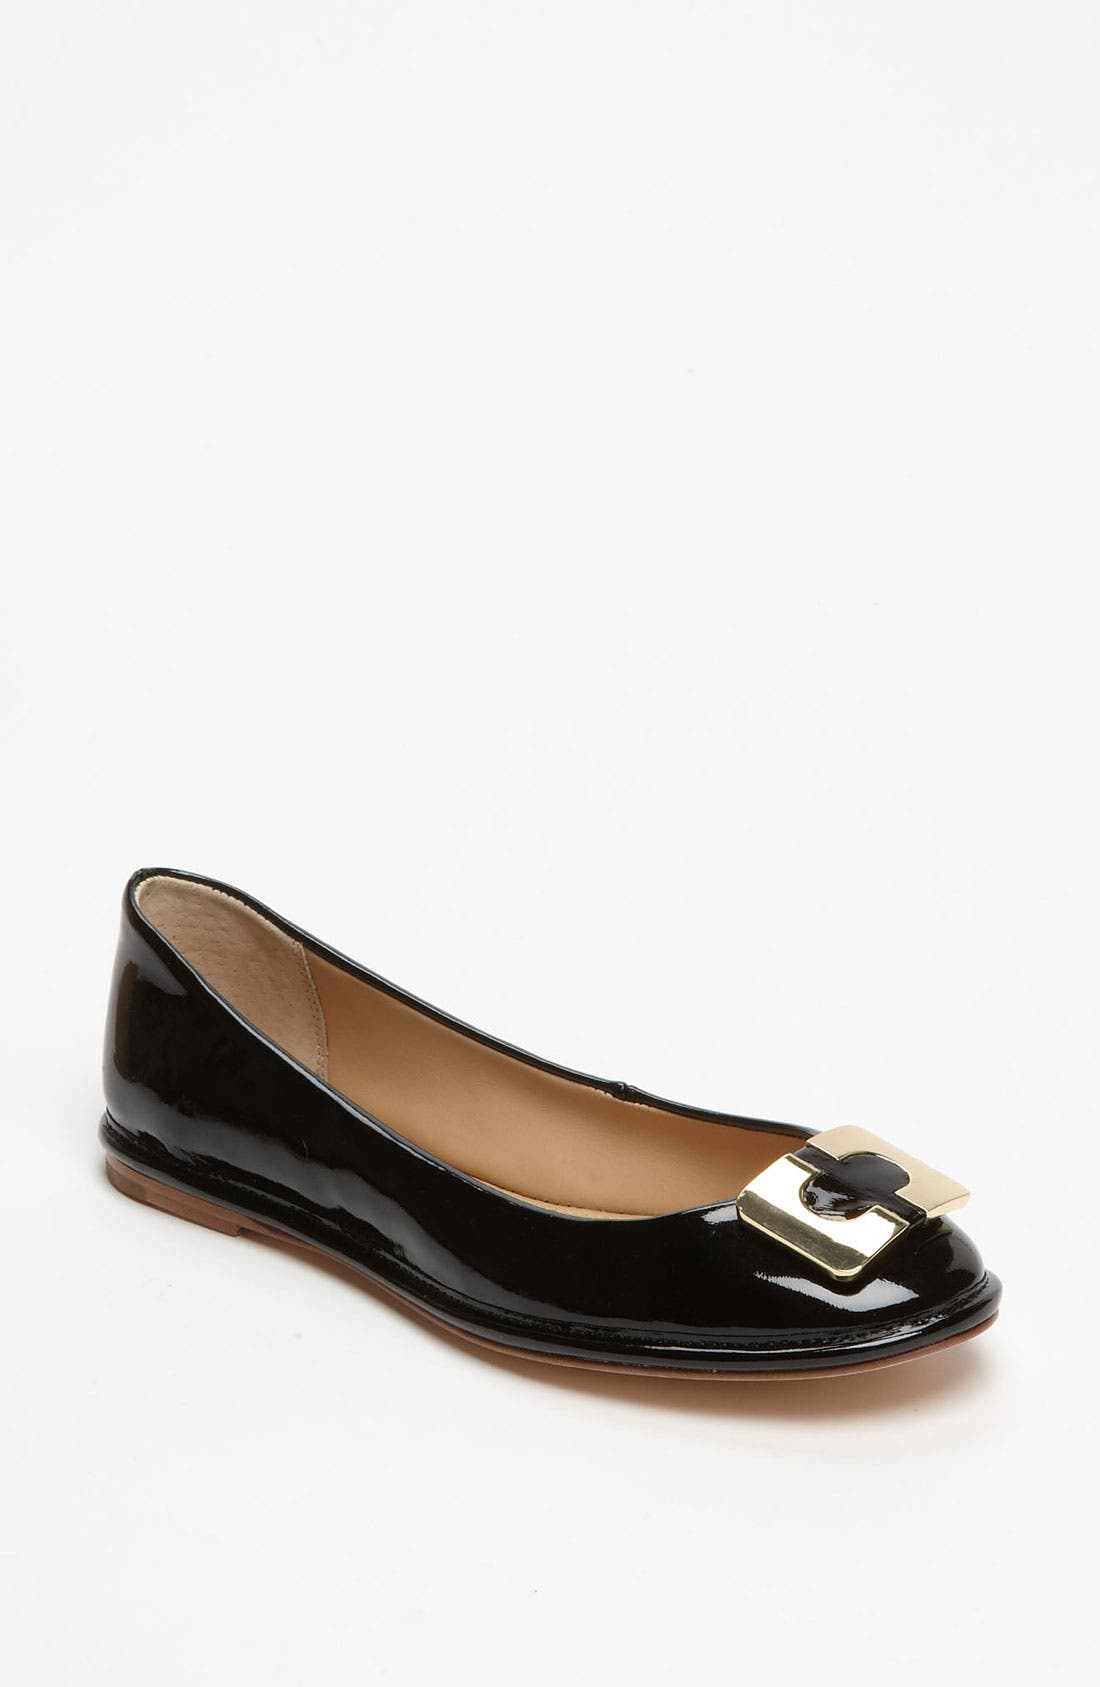 Alternate Image 1 Selected - Diane von Furstenberg 'Brooke' Flat